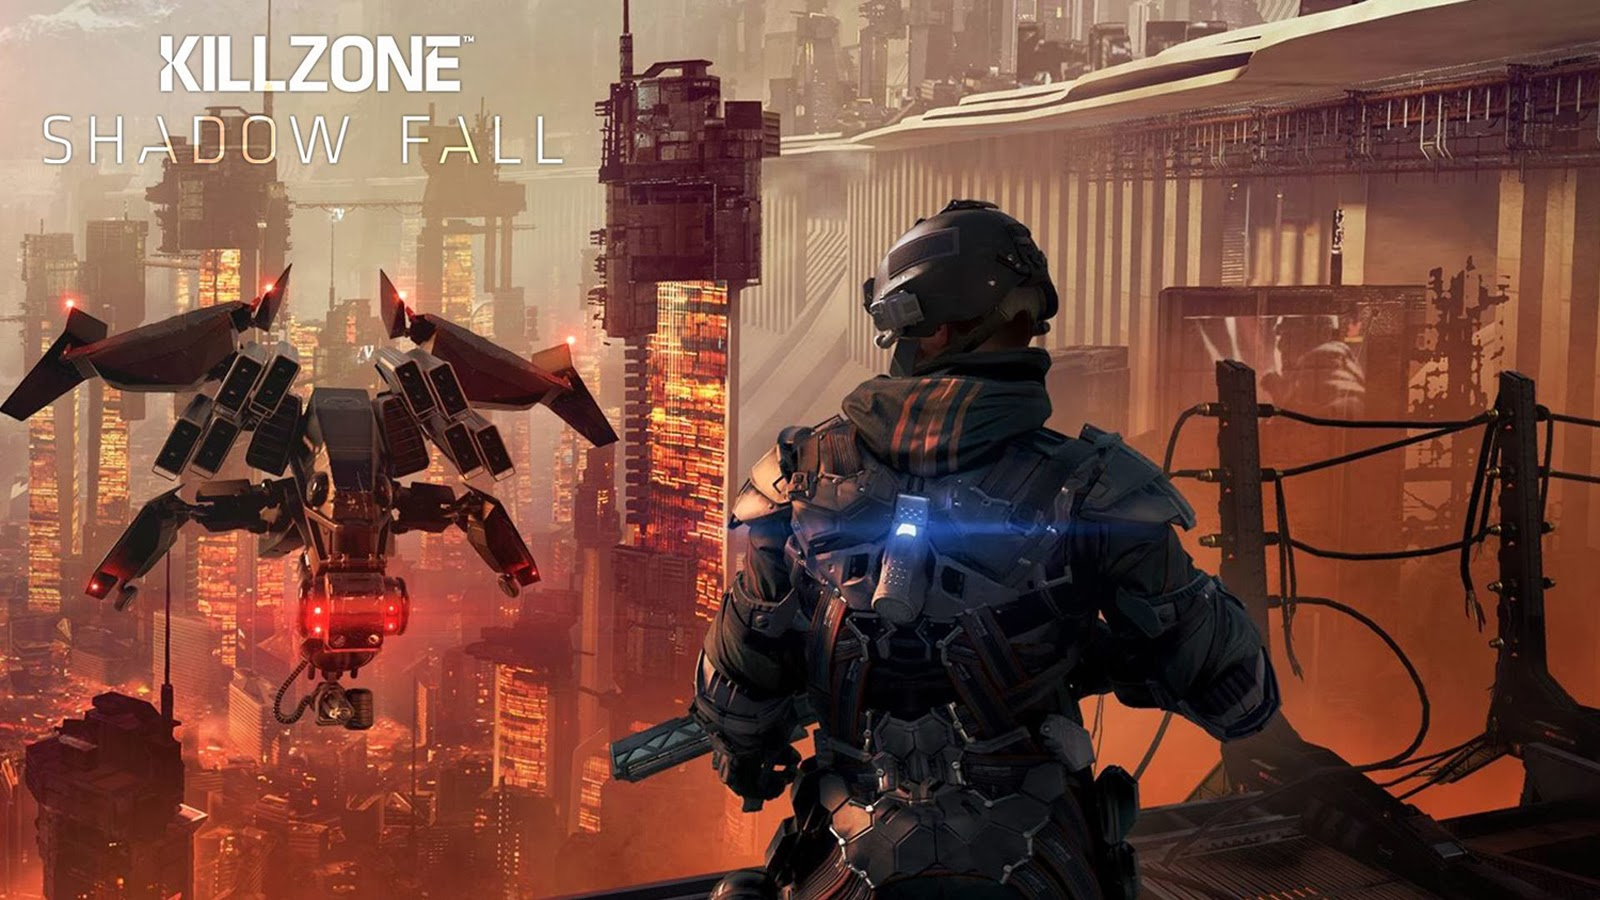 Killzone shadow fall game a487 hd wallpaper voltagebd Images